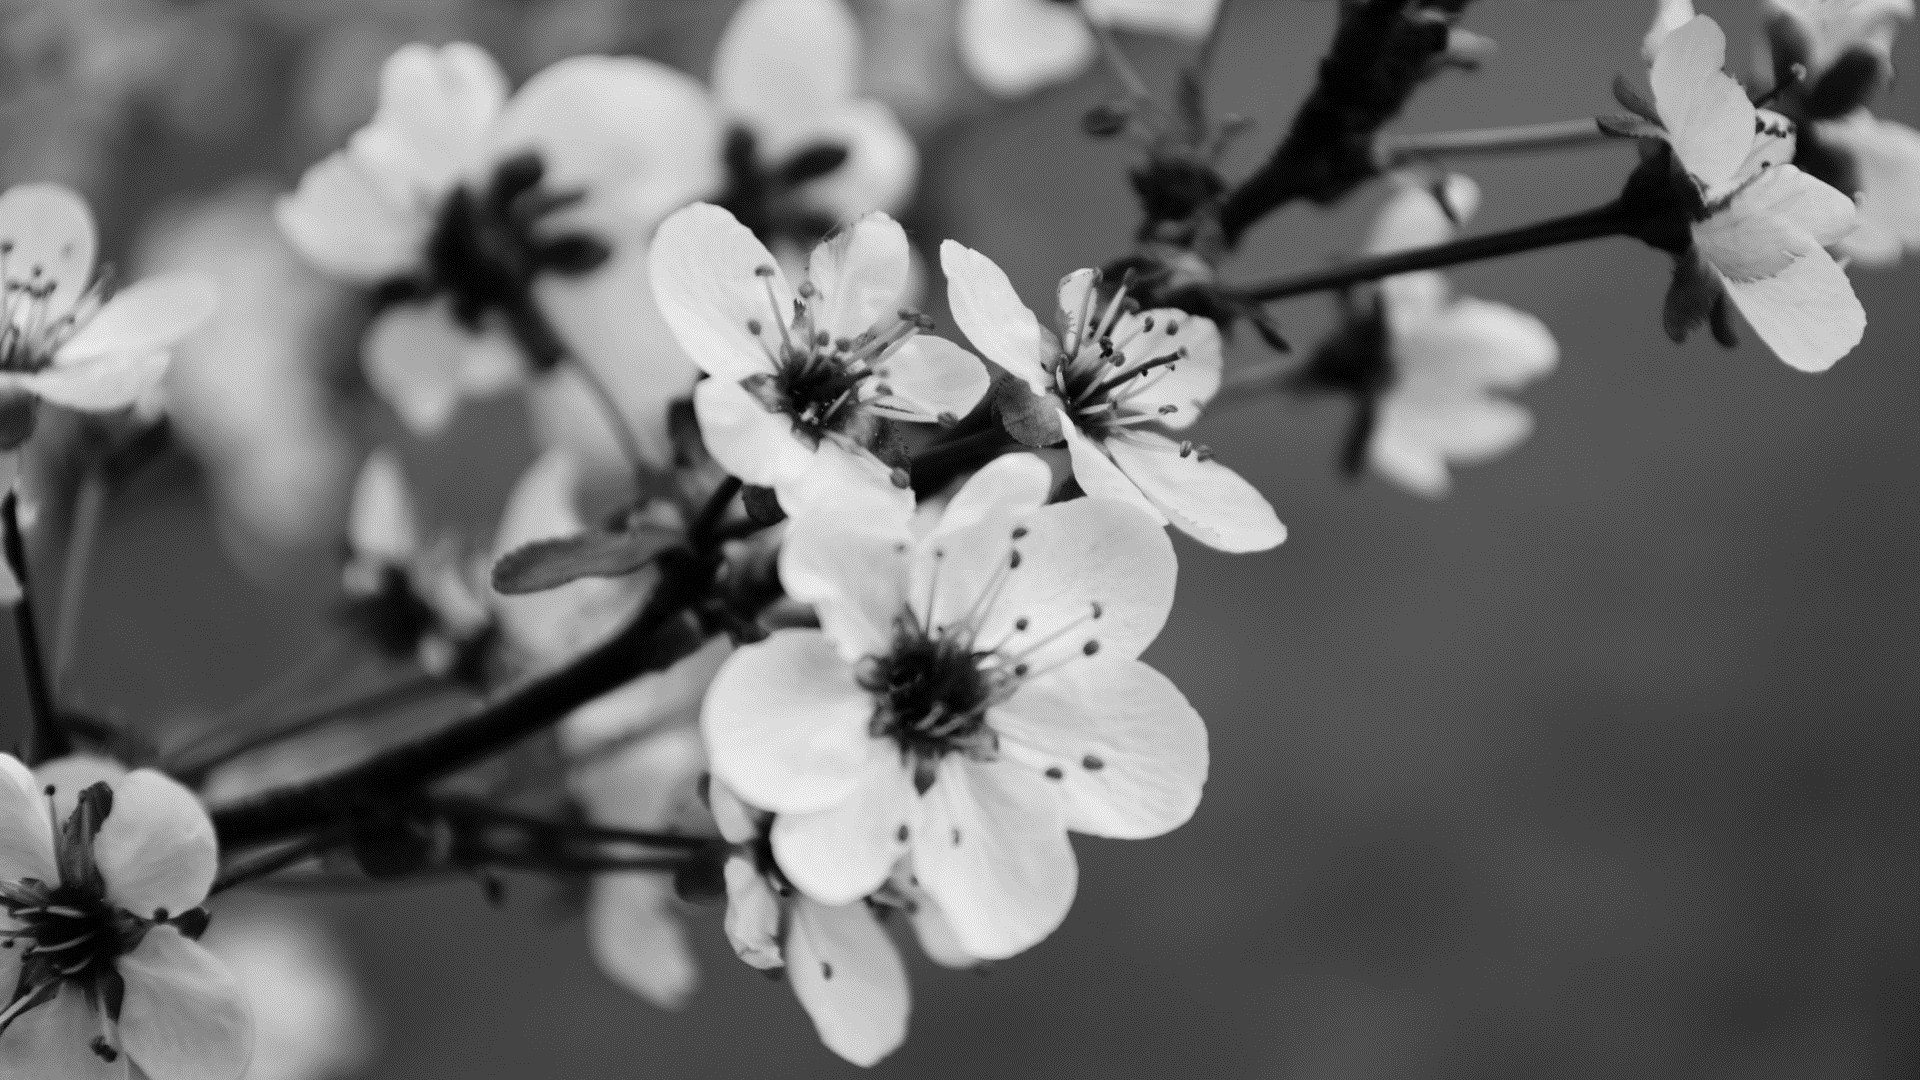 Black And White Floral Full HD Wallpaper